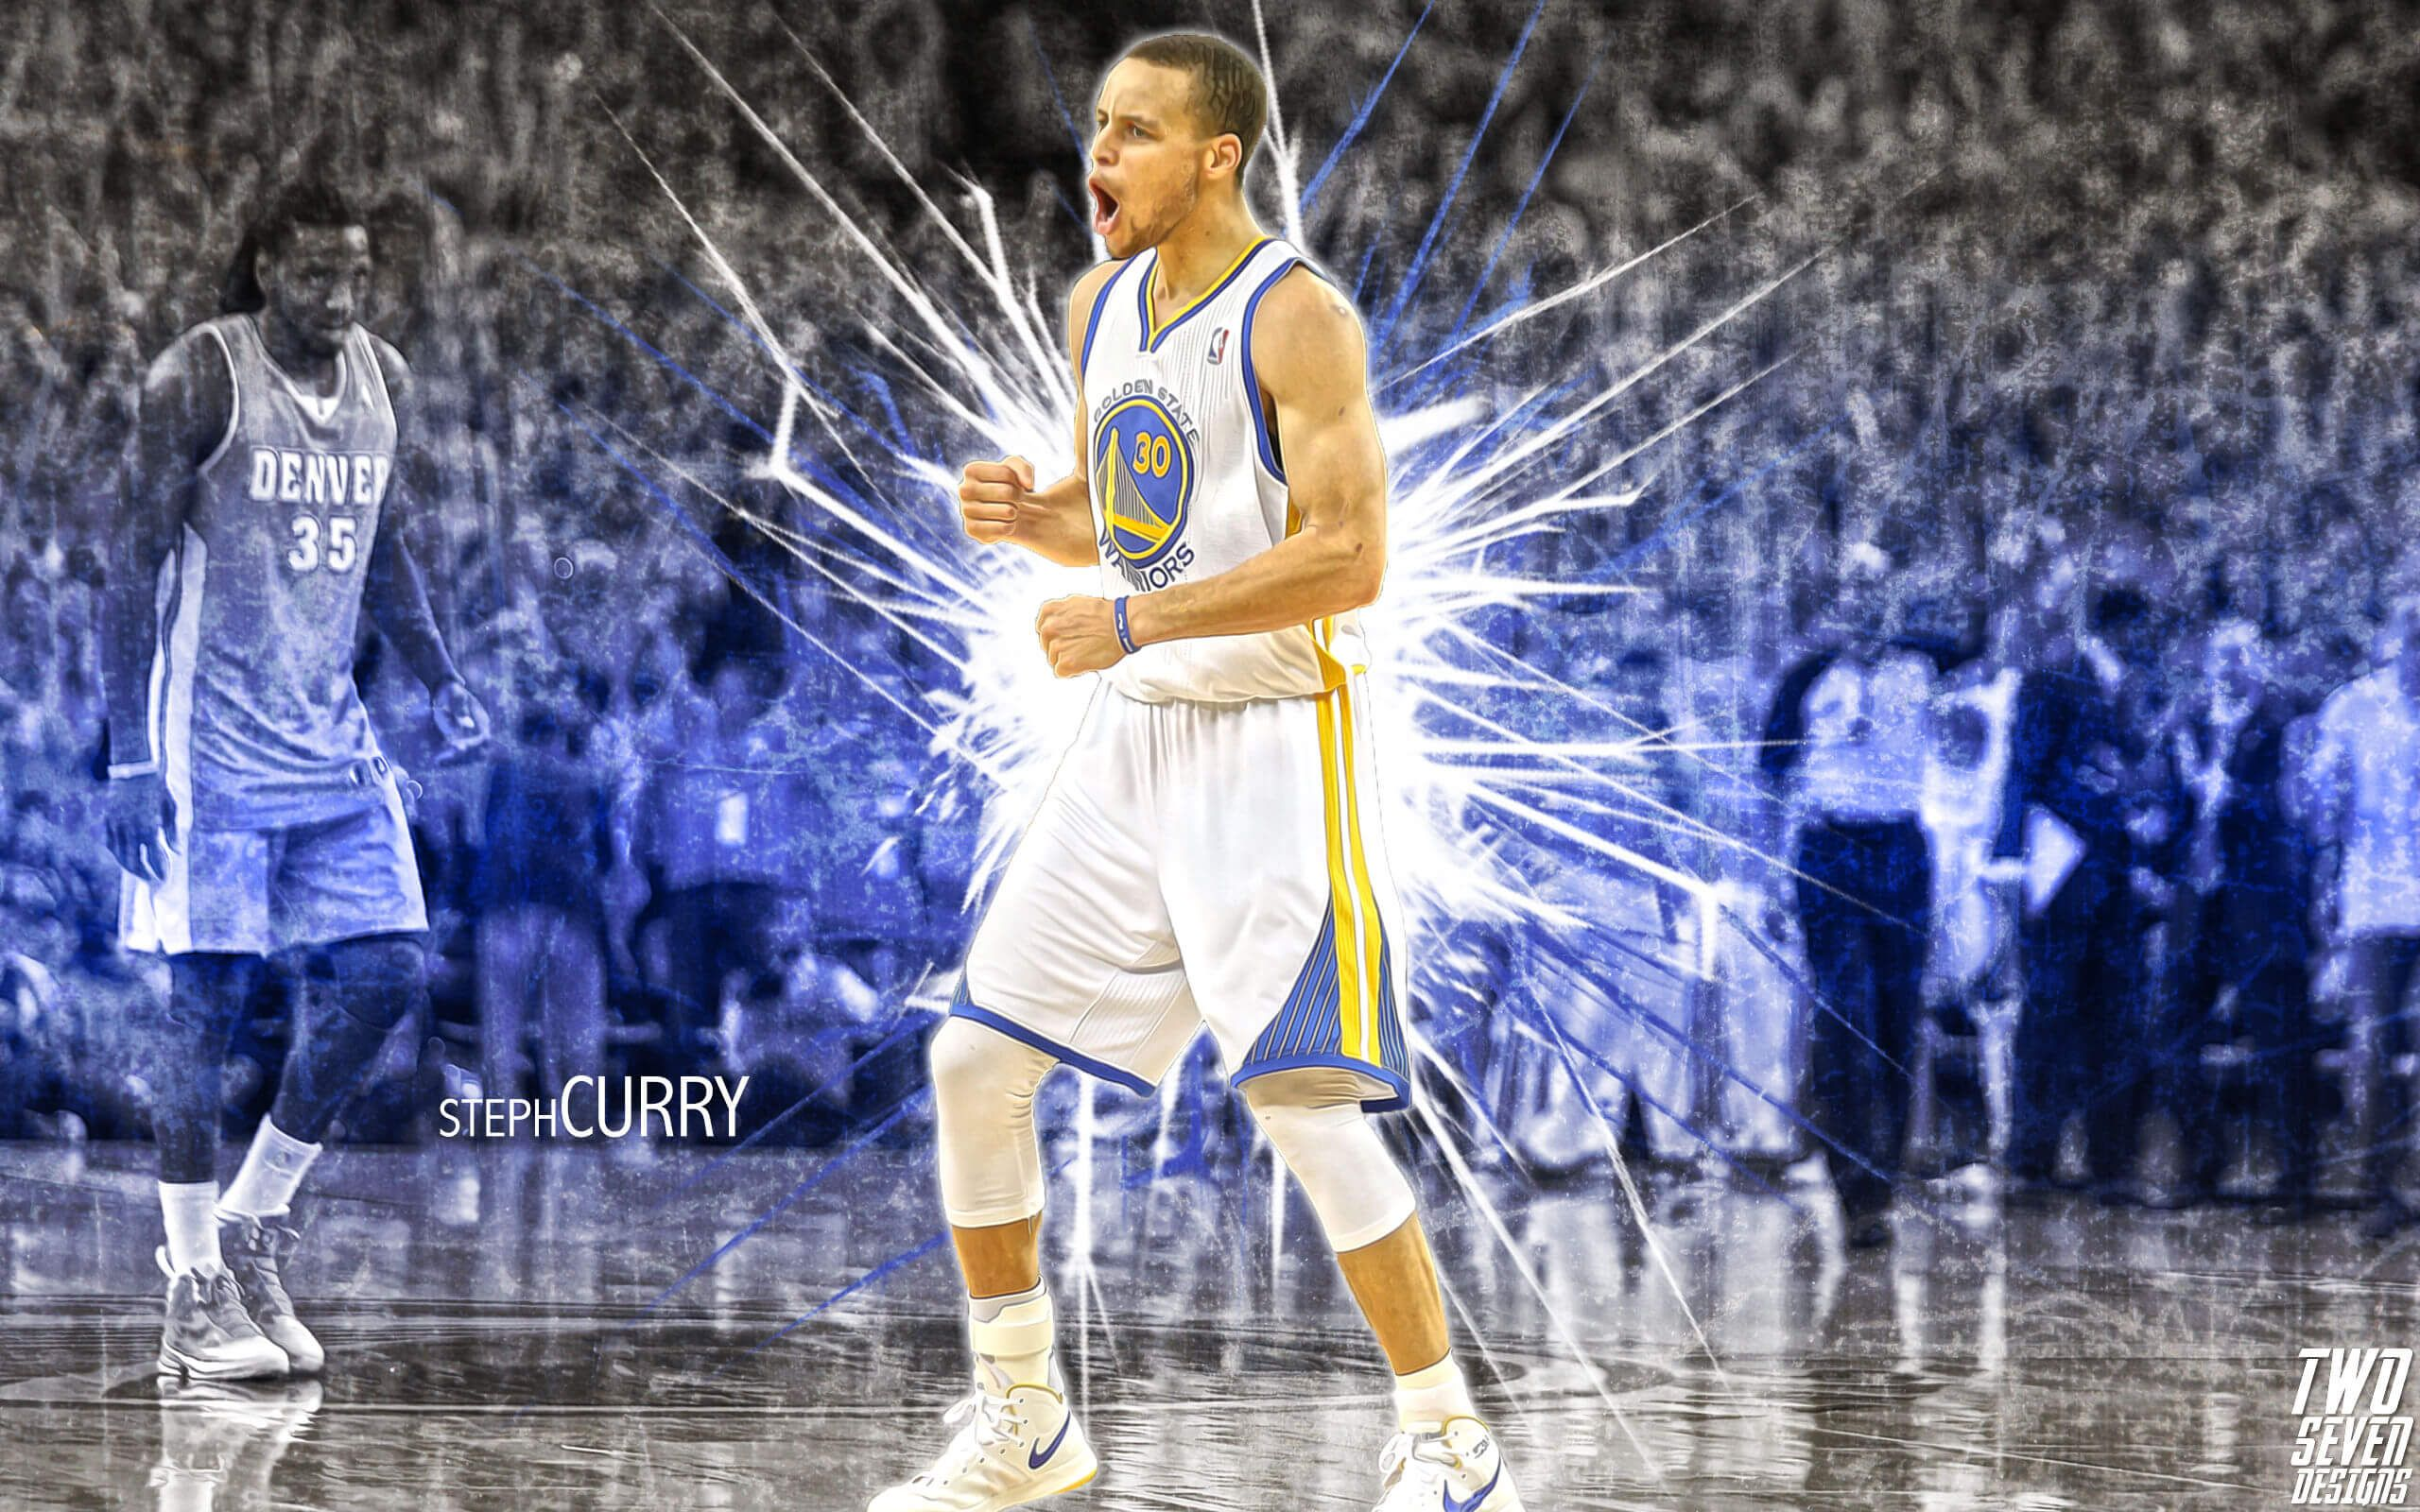 Get Motivation Stephen Curry Player Poster 12 x 18 inch Wardell Stephen Curry